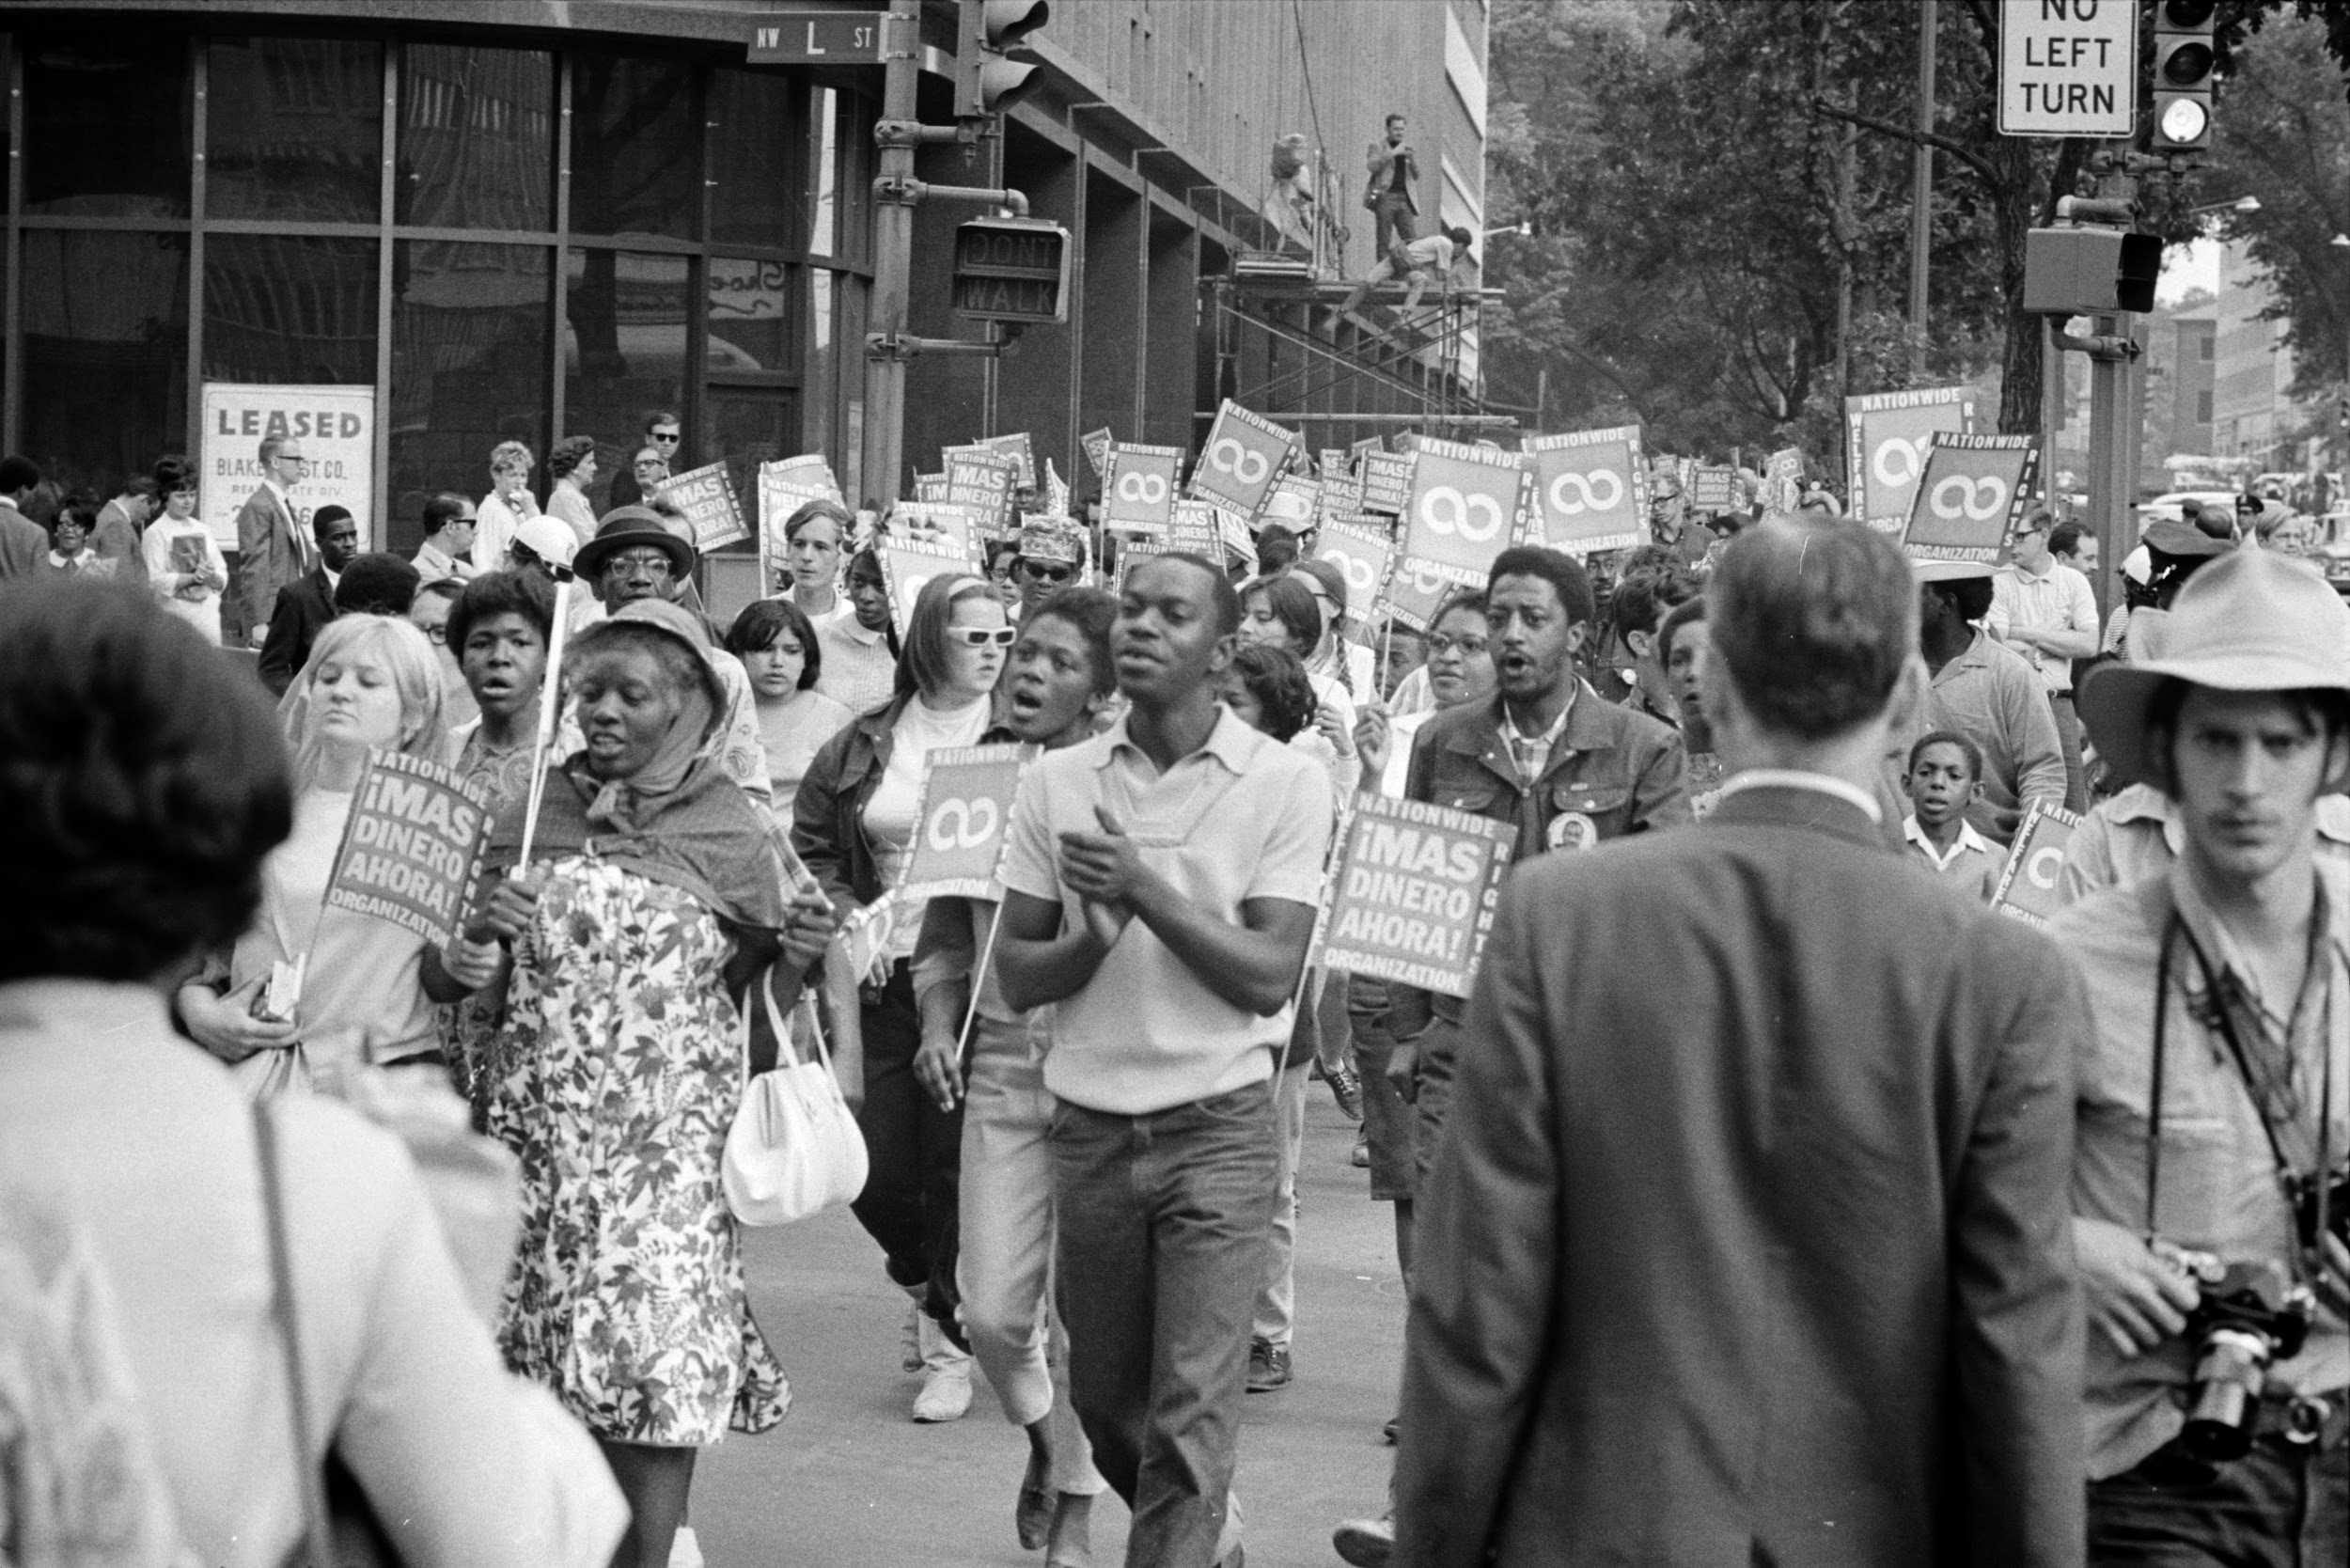 Many participants in the Poor People's March occupied the National Mall in Washington, D.C., for several weeks during the spring of 1968. In the photograph above, protestors march along Connecticut Avenue in June, 1968.